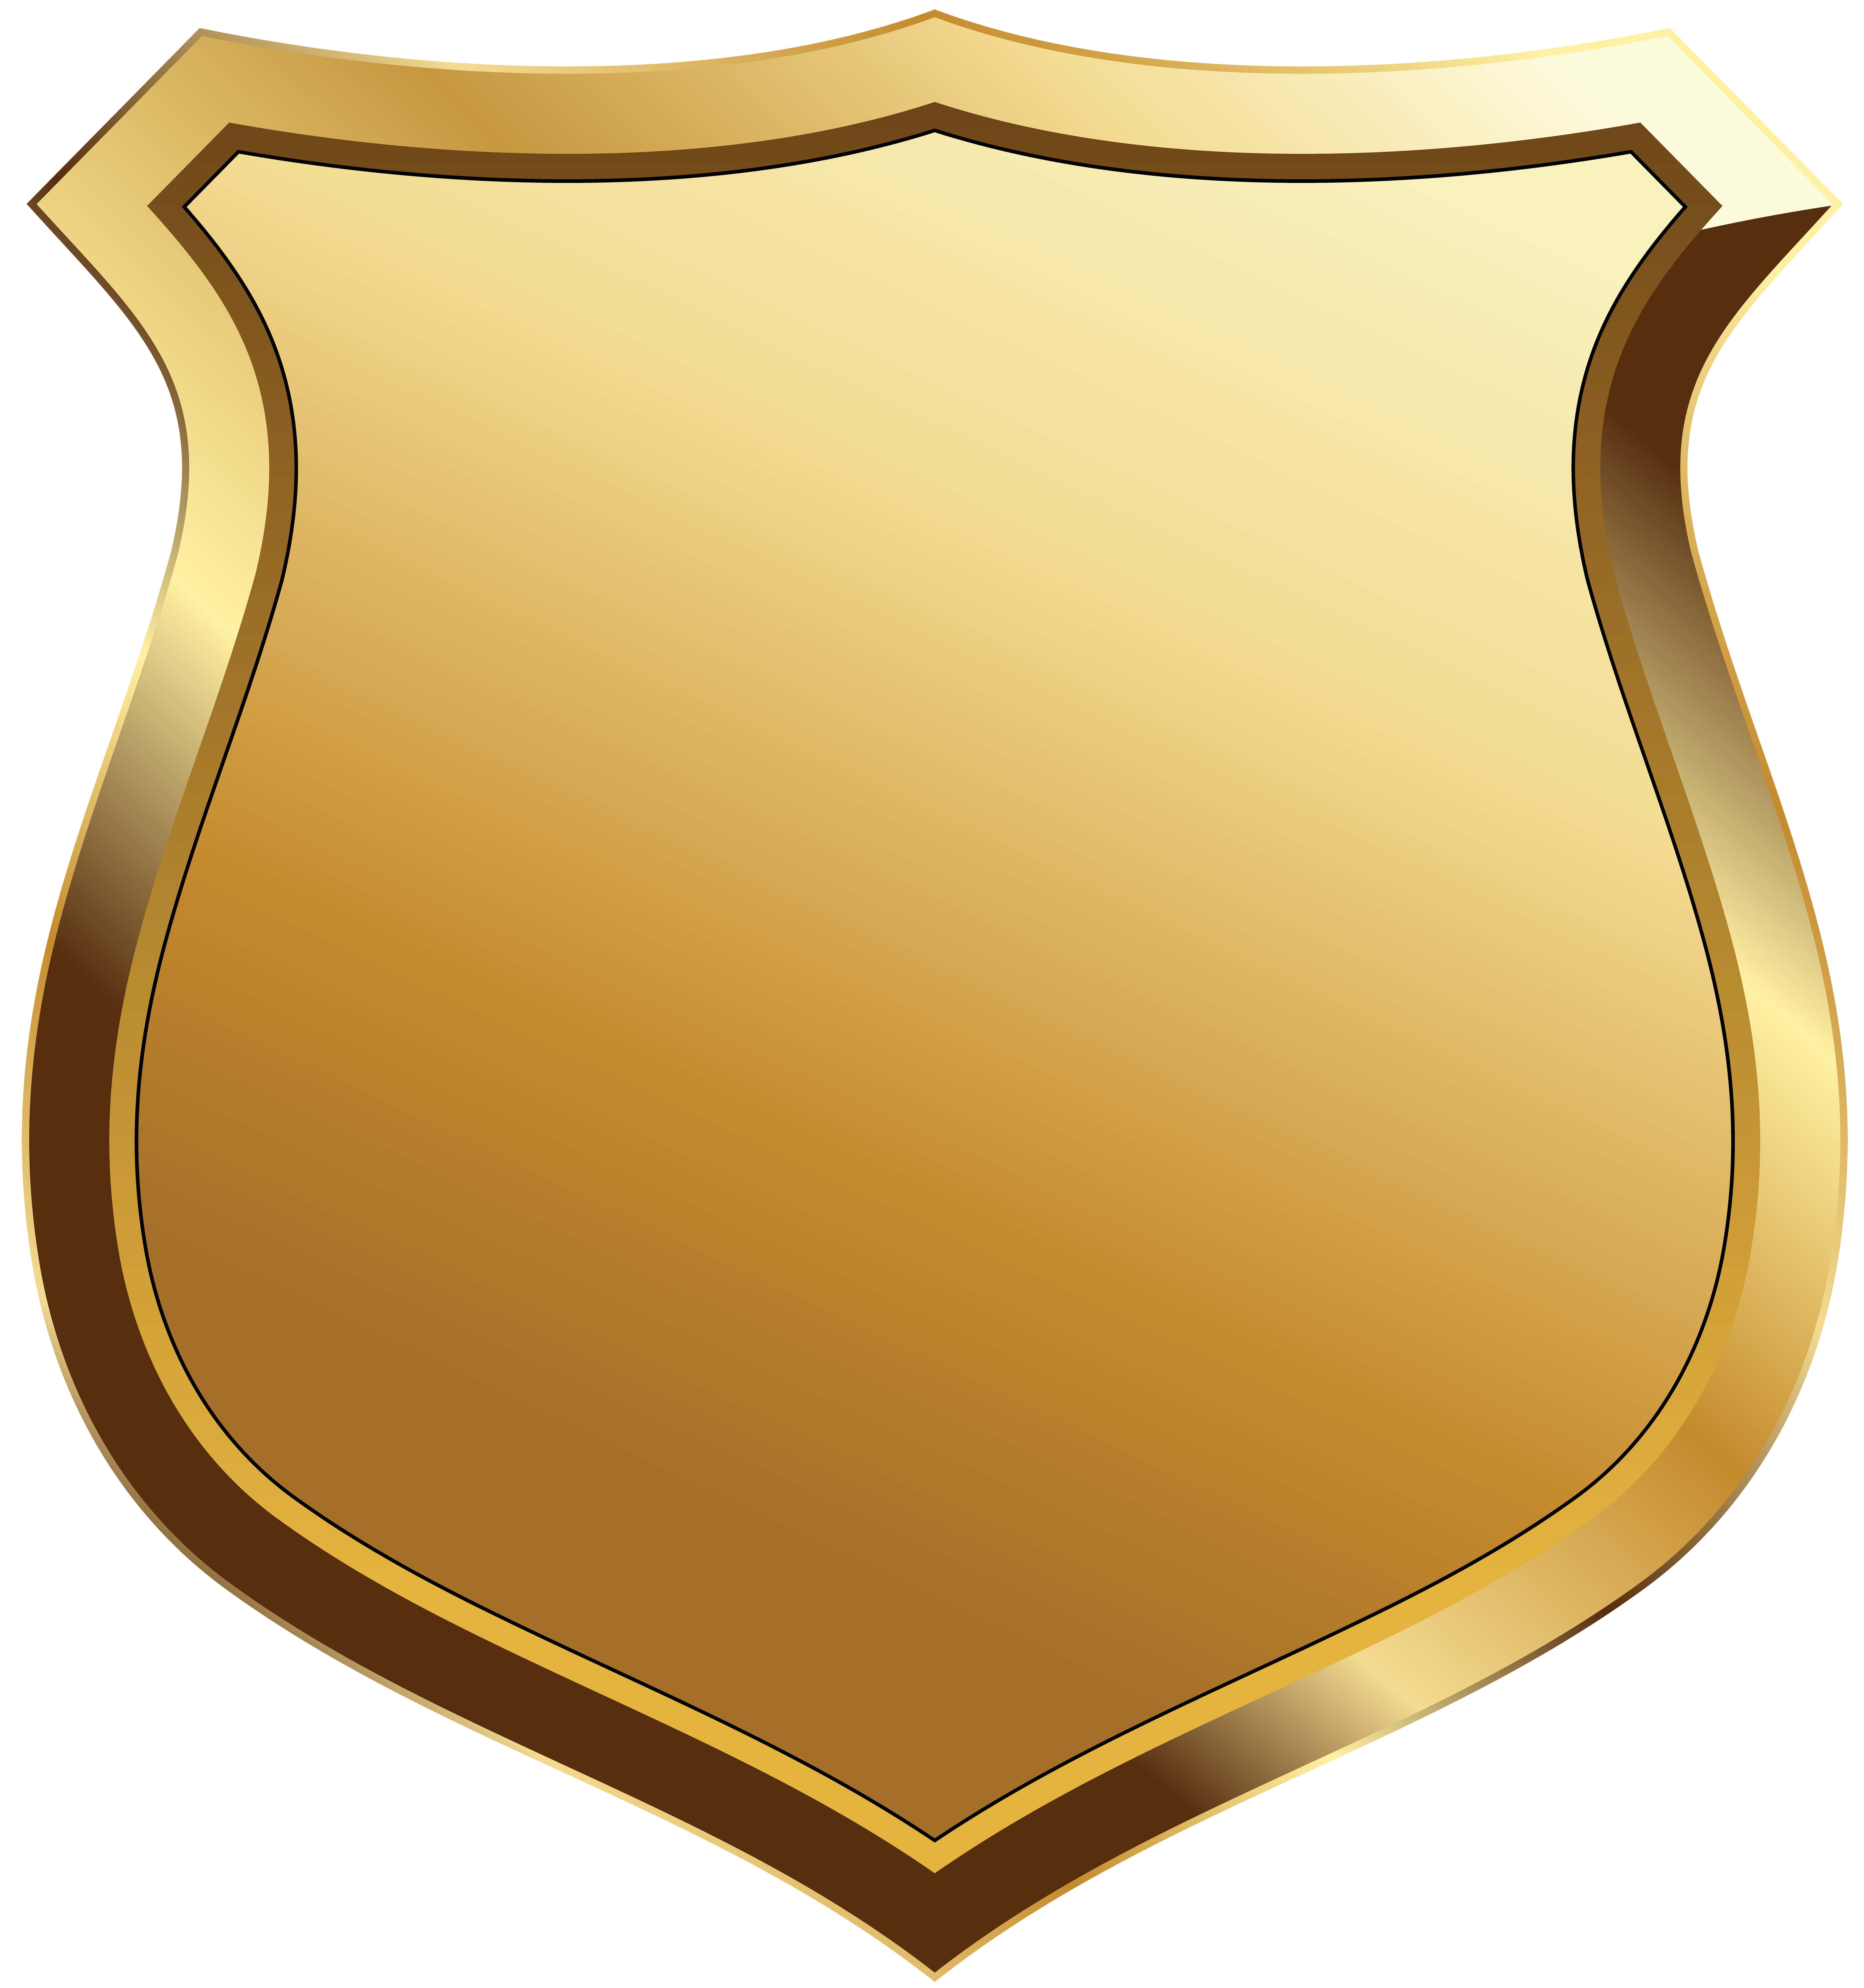 Gold Badge Template Clip Art Image.